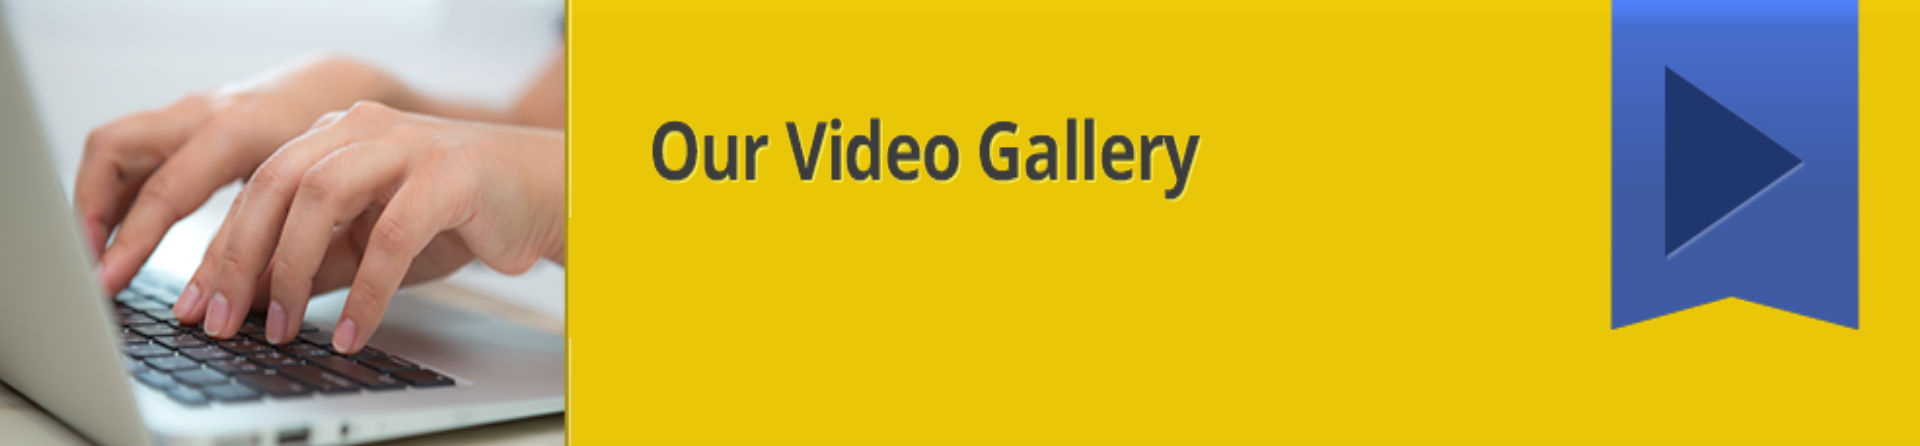 OurVideoGalleryBG